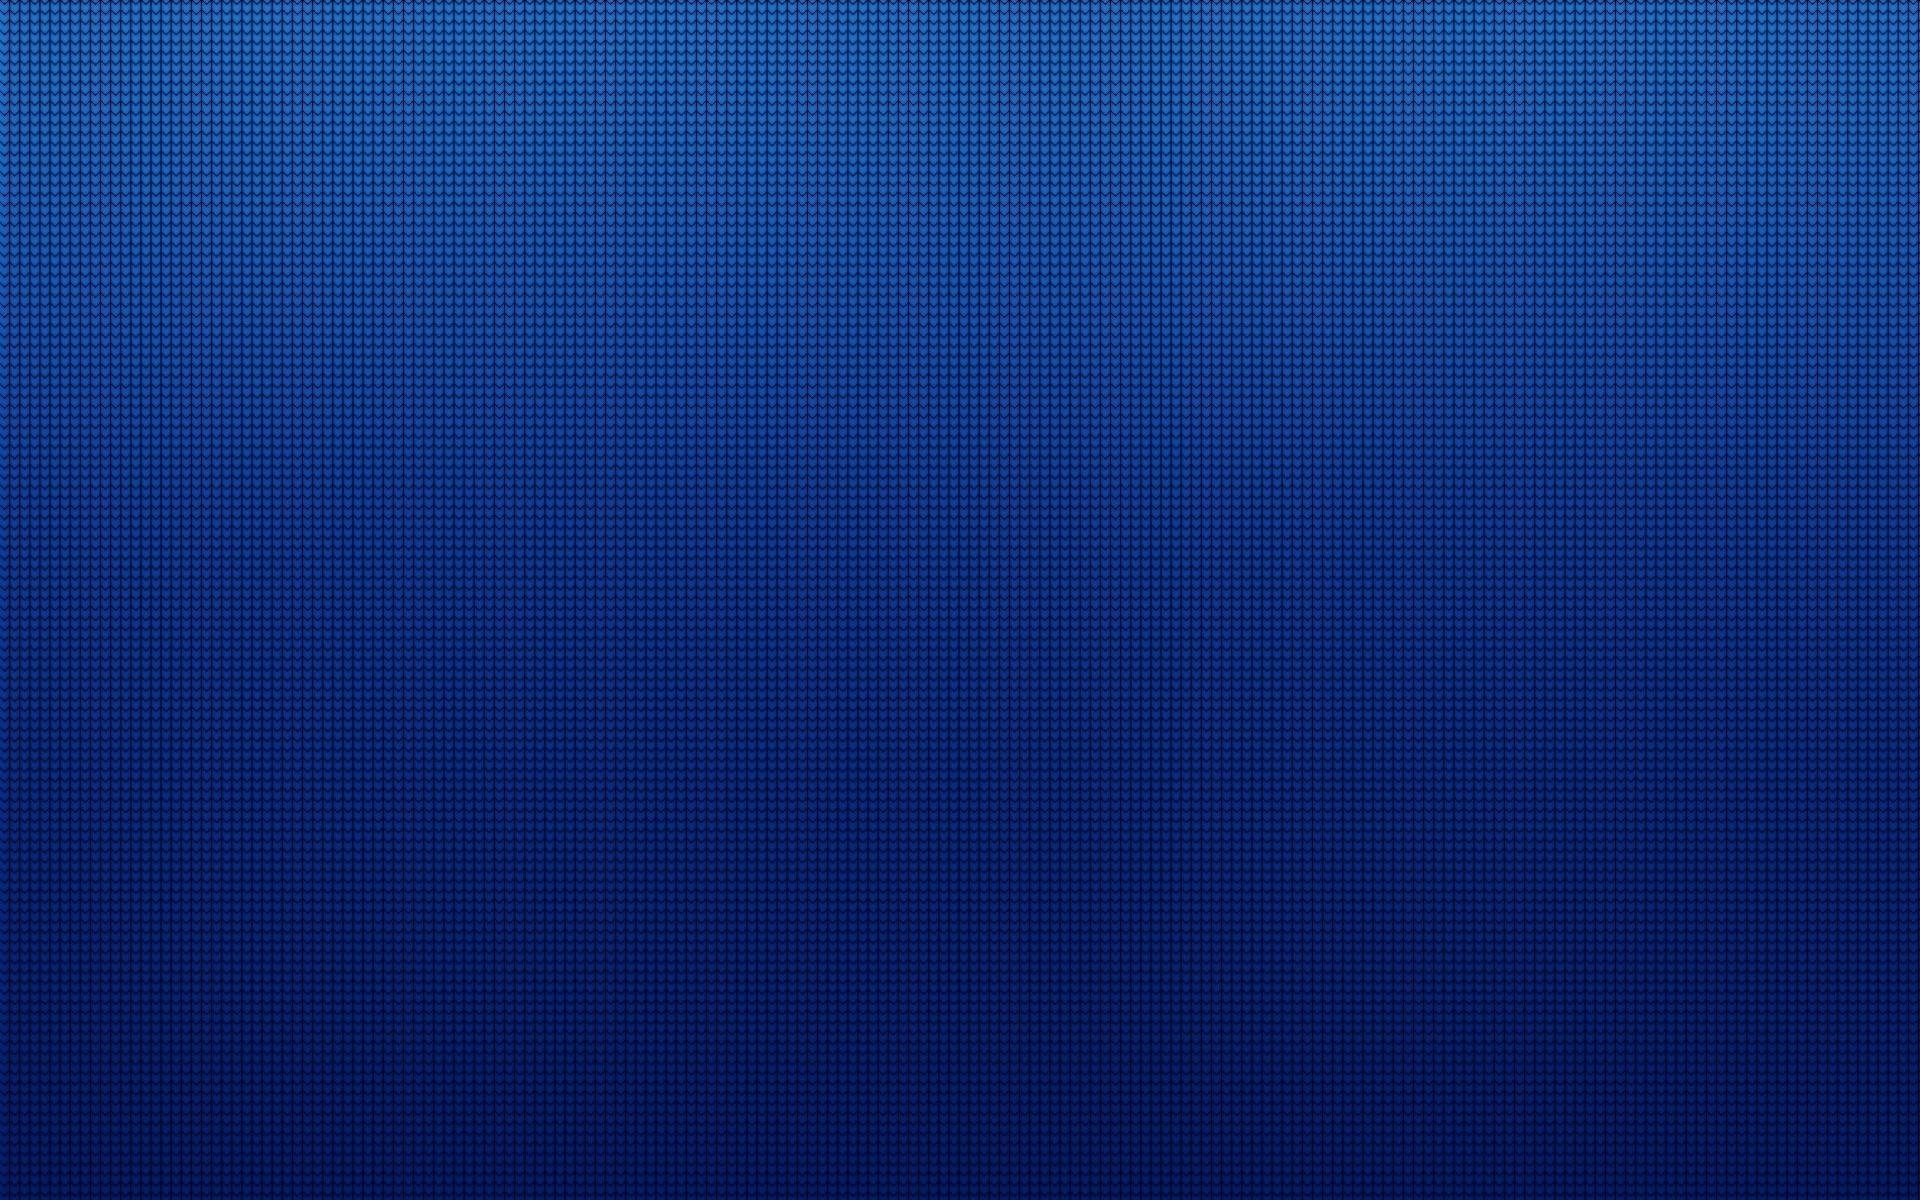 Res: 1920x1200, Title : dark blue backgrounds image - wallpaper cave. Dimension : 1920 x  1200. File Type : JPG/JPEG